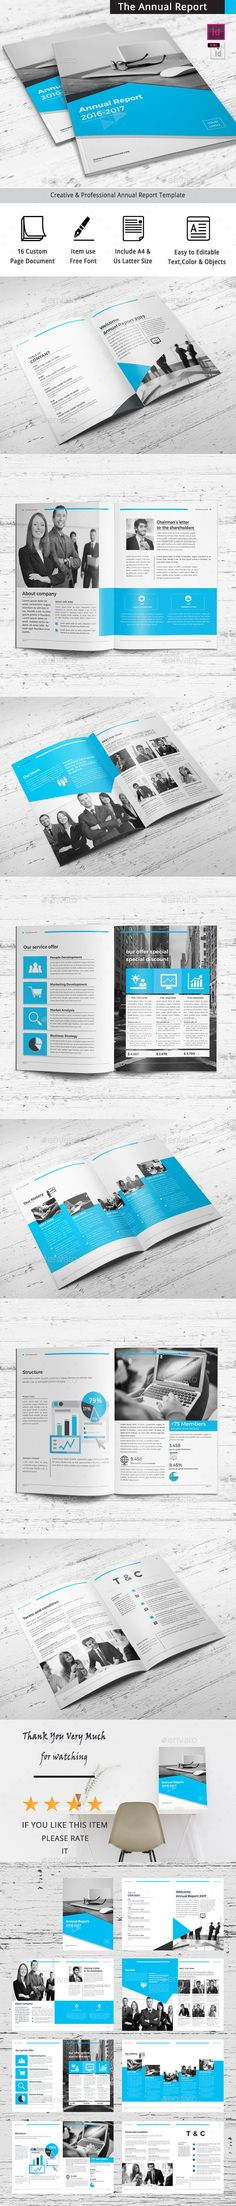 Brochure u2014 InDesign Template #corporate profile #business brochure - corporate profile template